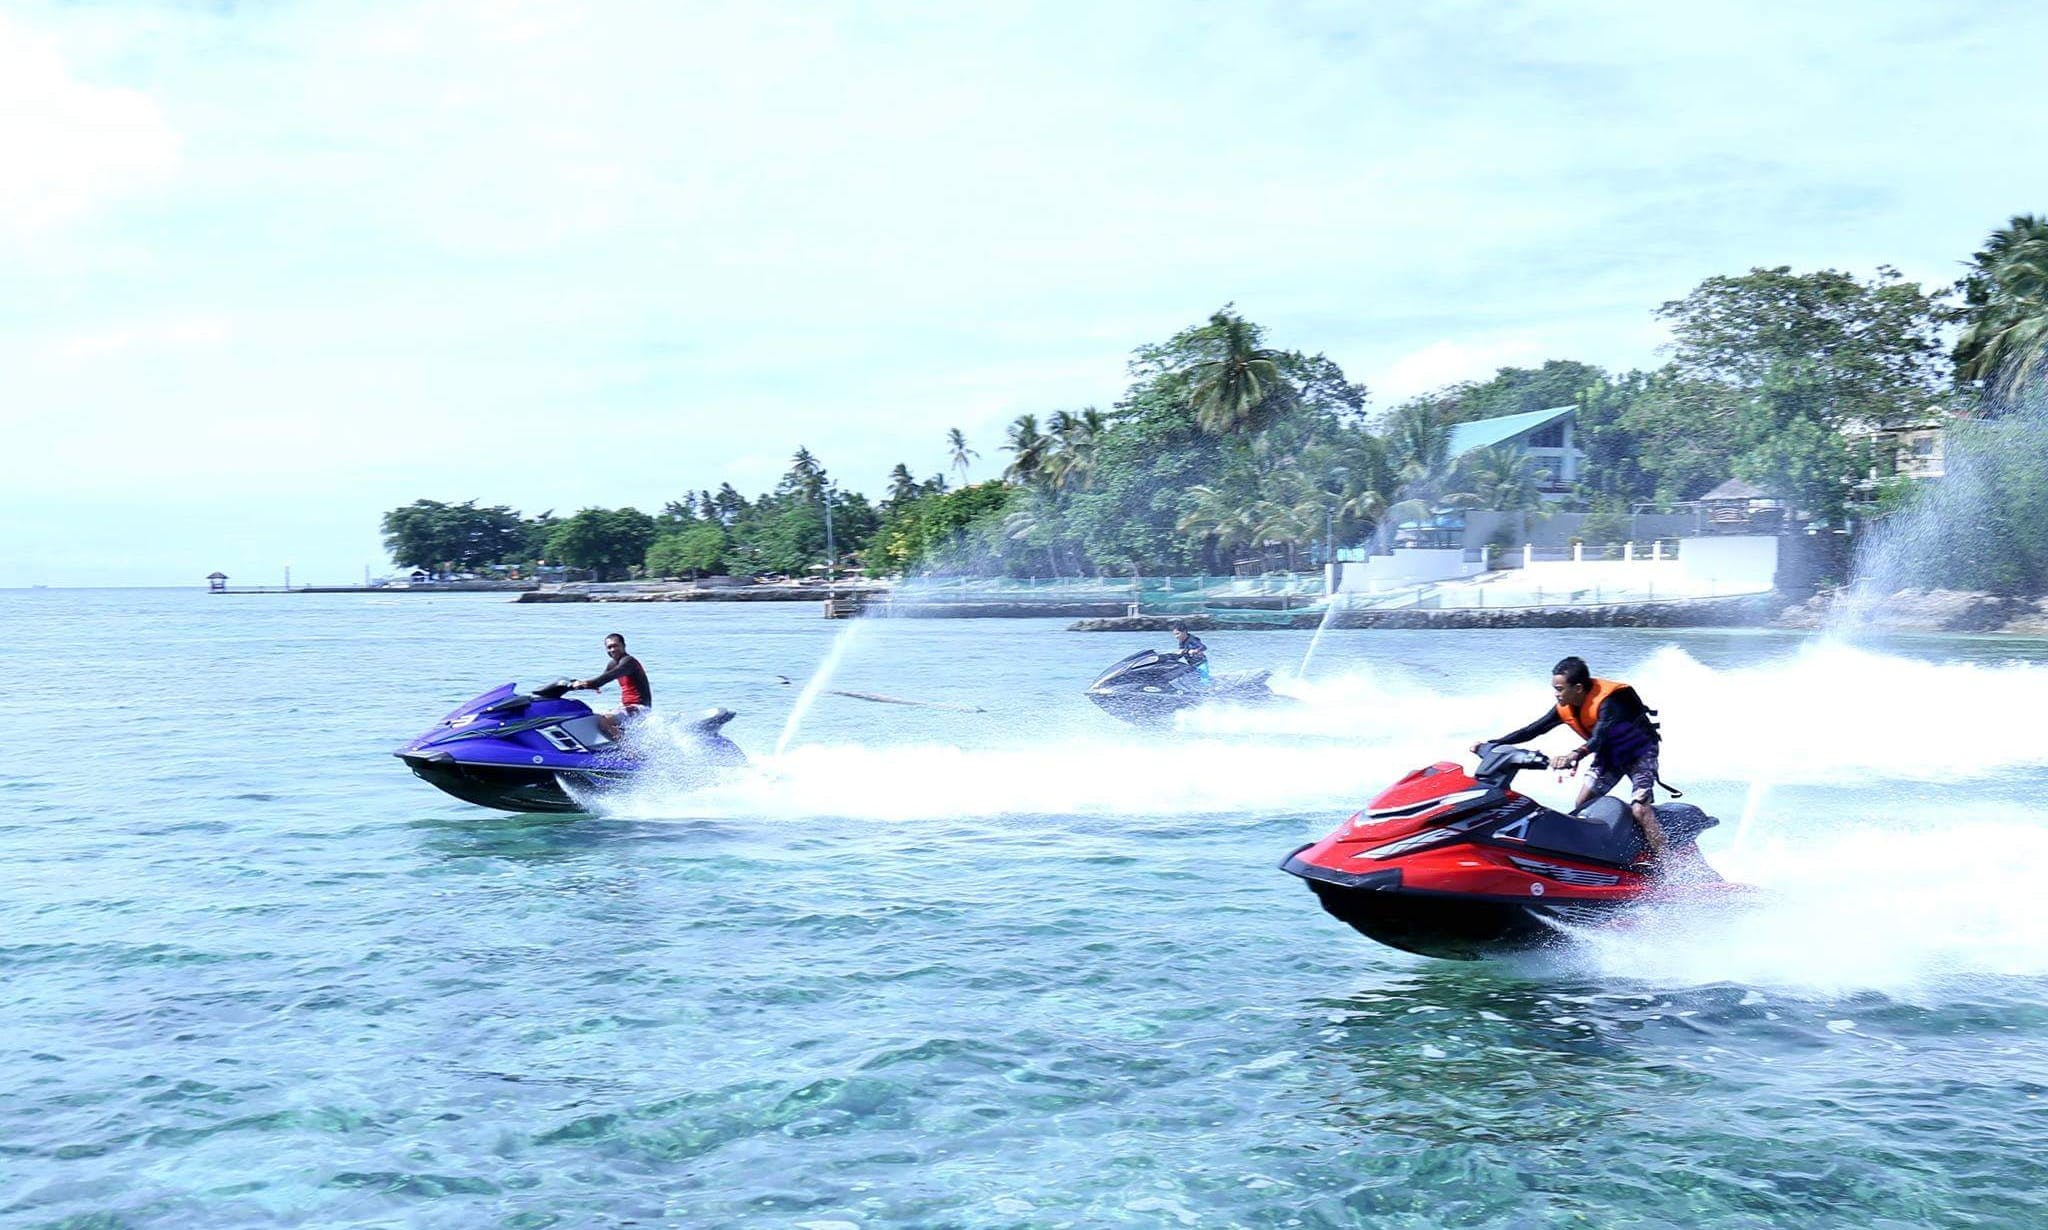 Rent a Brand New Jet Ski for 3 People in Davao City, Philippines